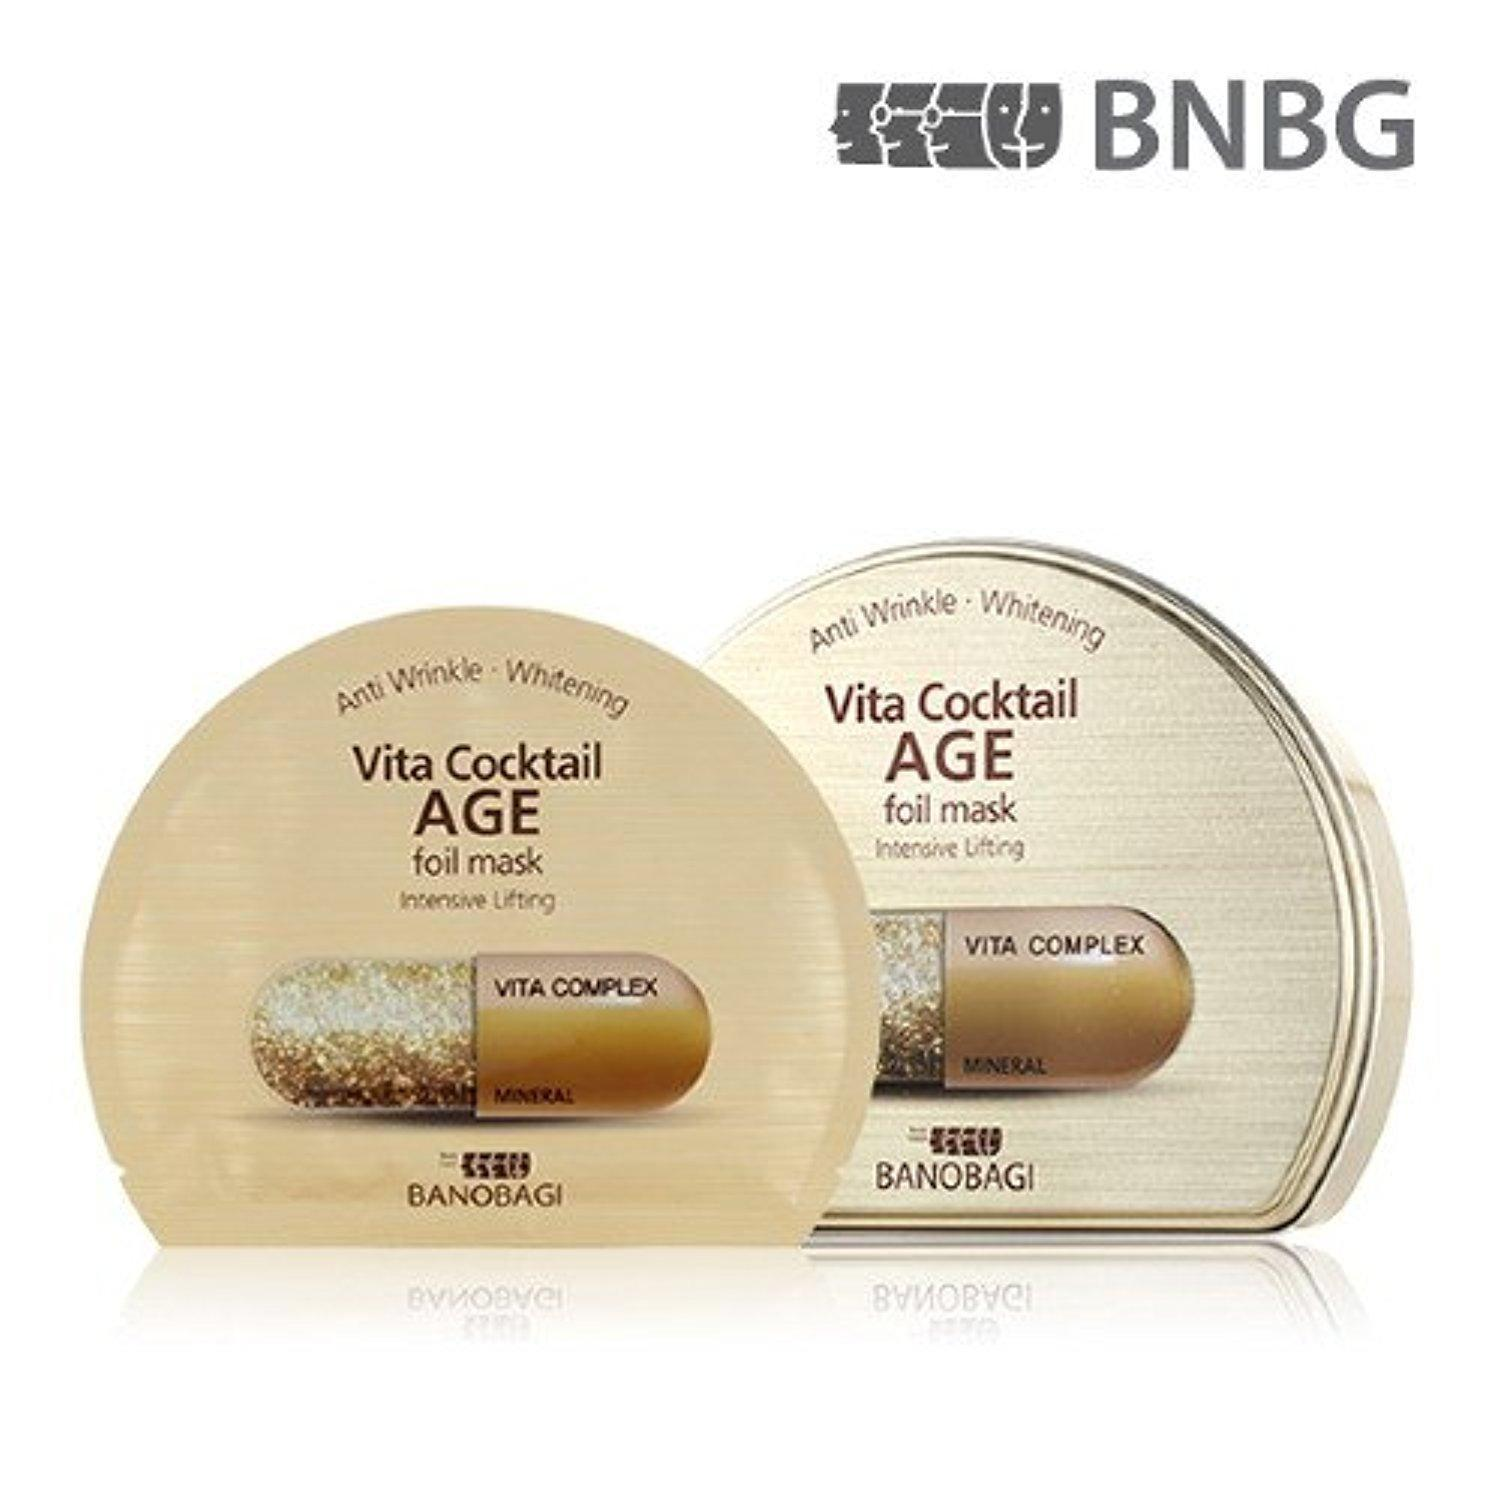 new-banobagi-vita-cocktail-age-foil-mask-sheet-30ml-10pcs-set-for-intensive-lifting.jpg